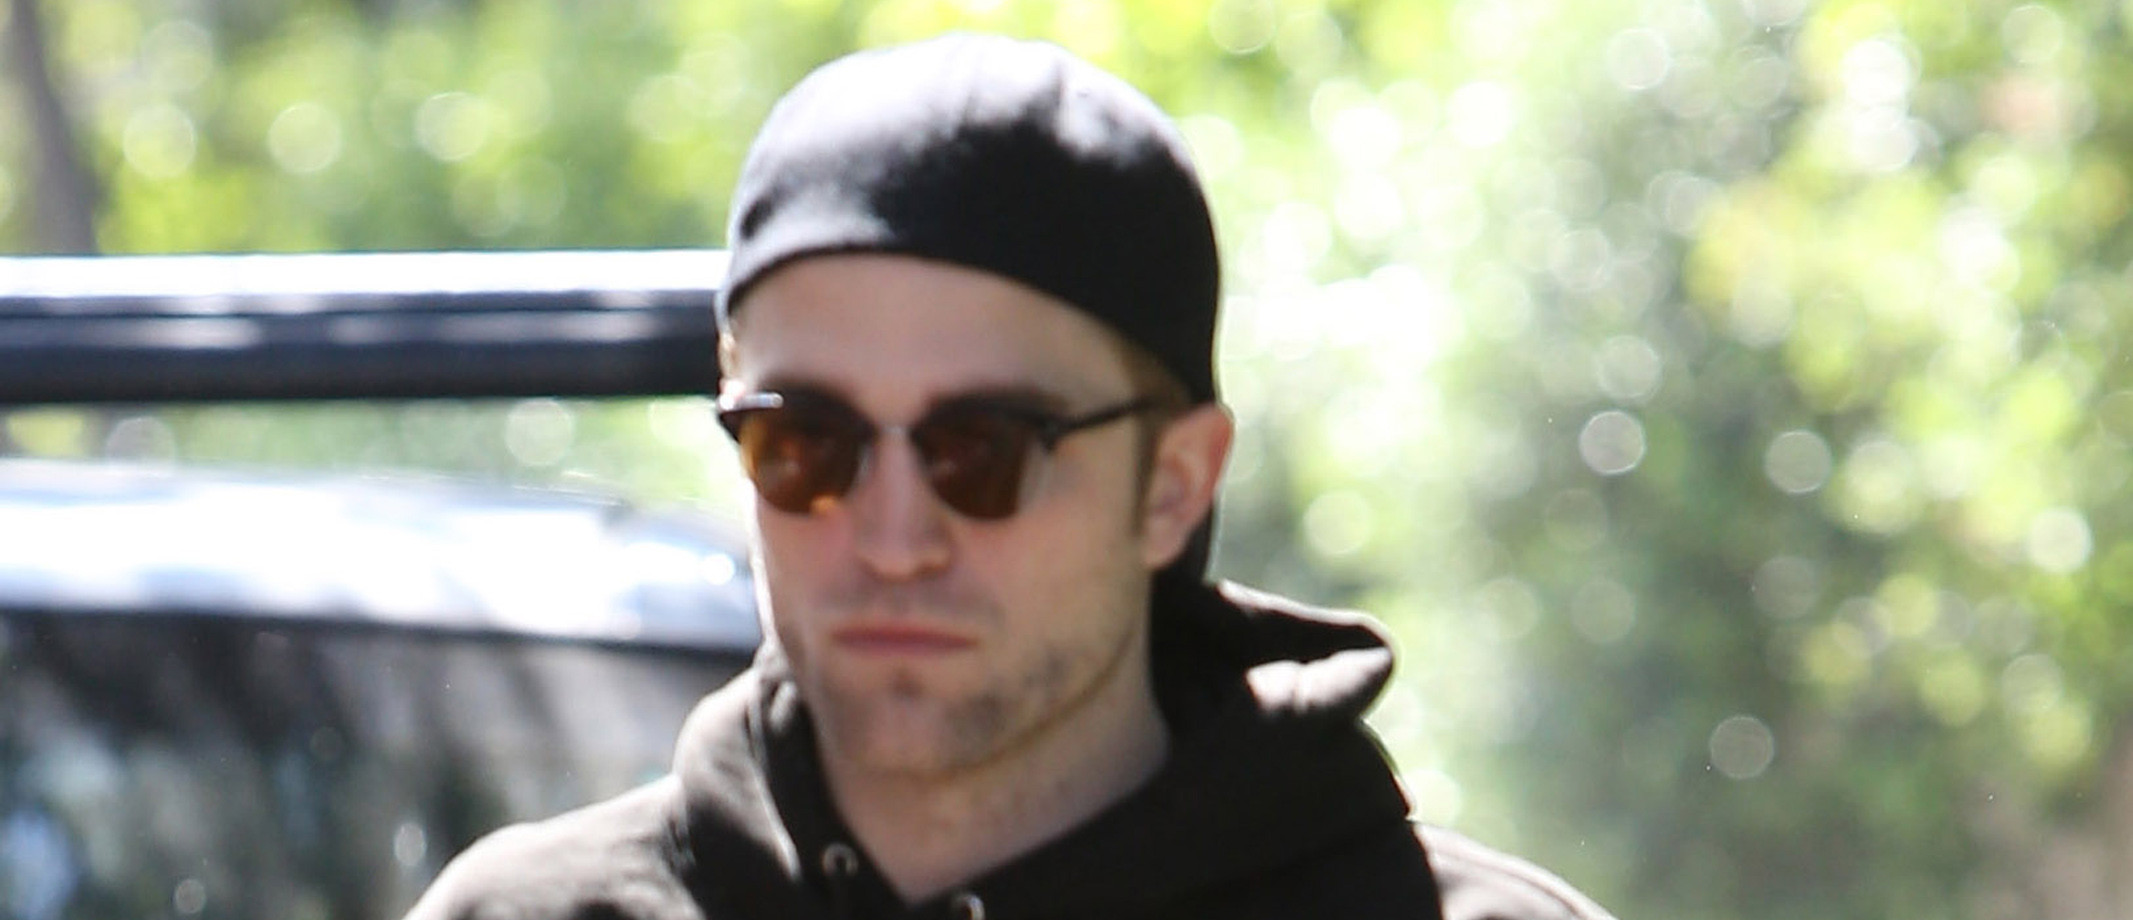 Fotos de Robert em Los Angeles (24/03)